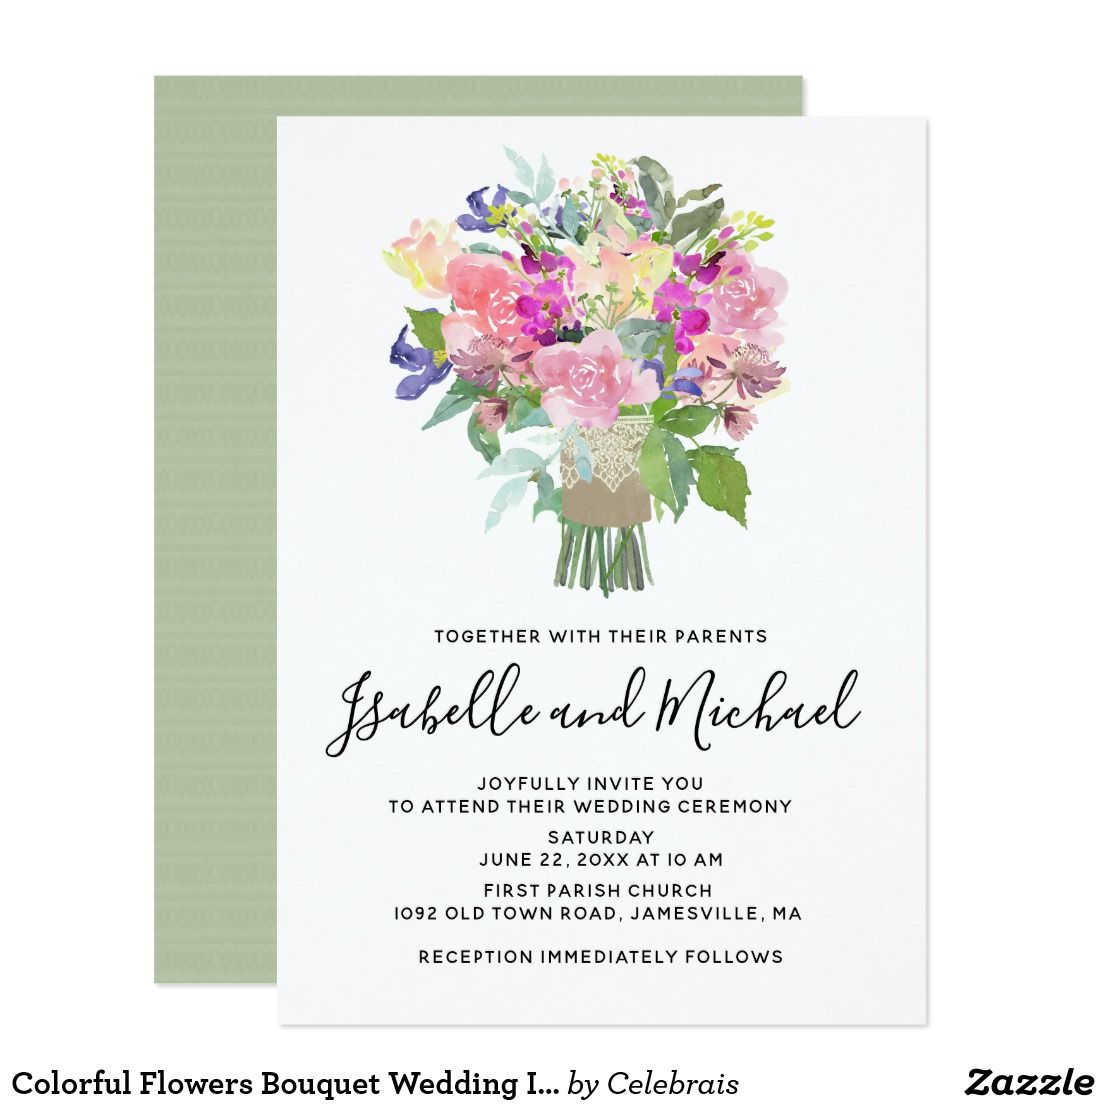 Colorful Flowers Bouquet Wedding Invitations